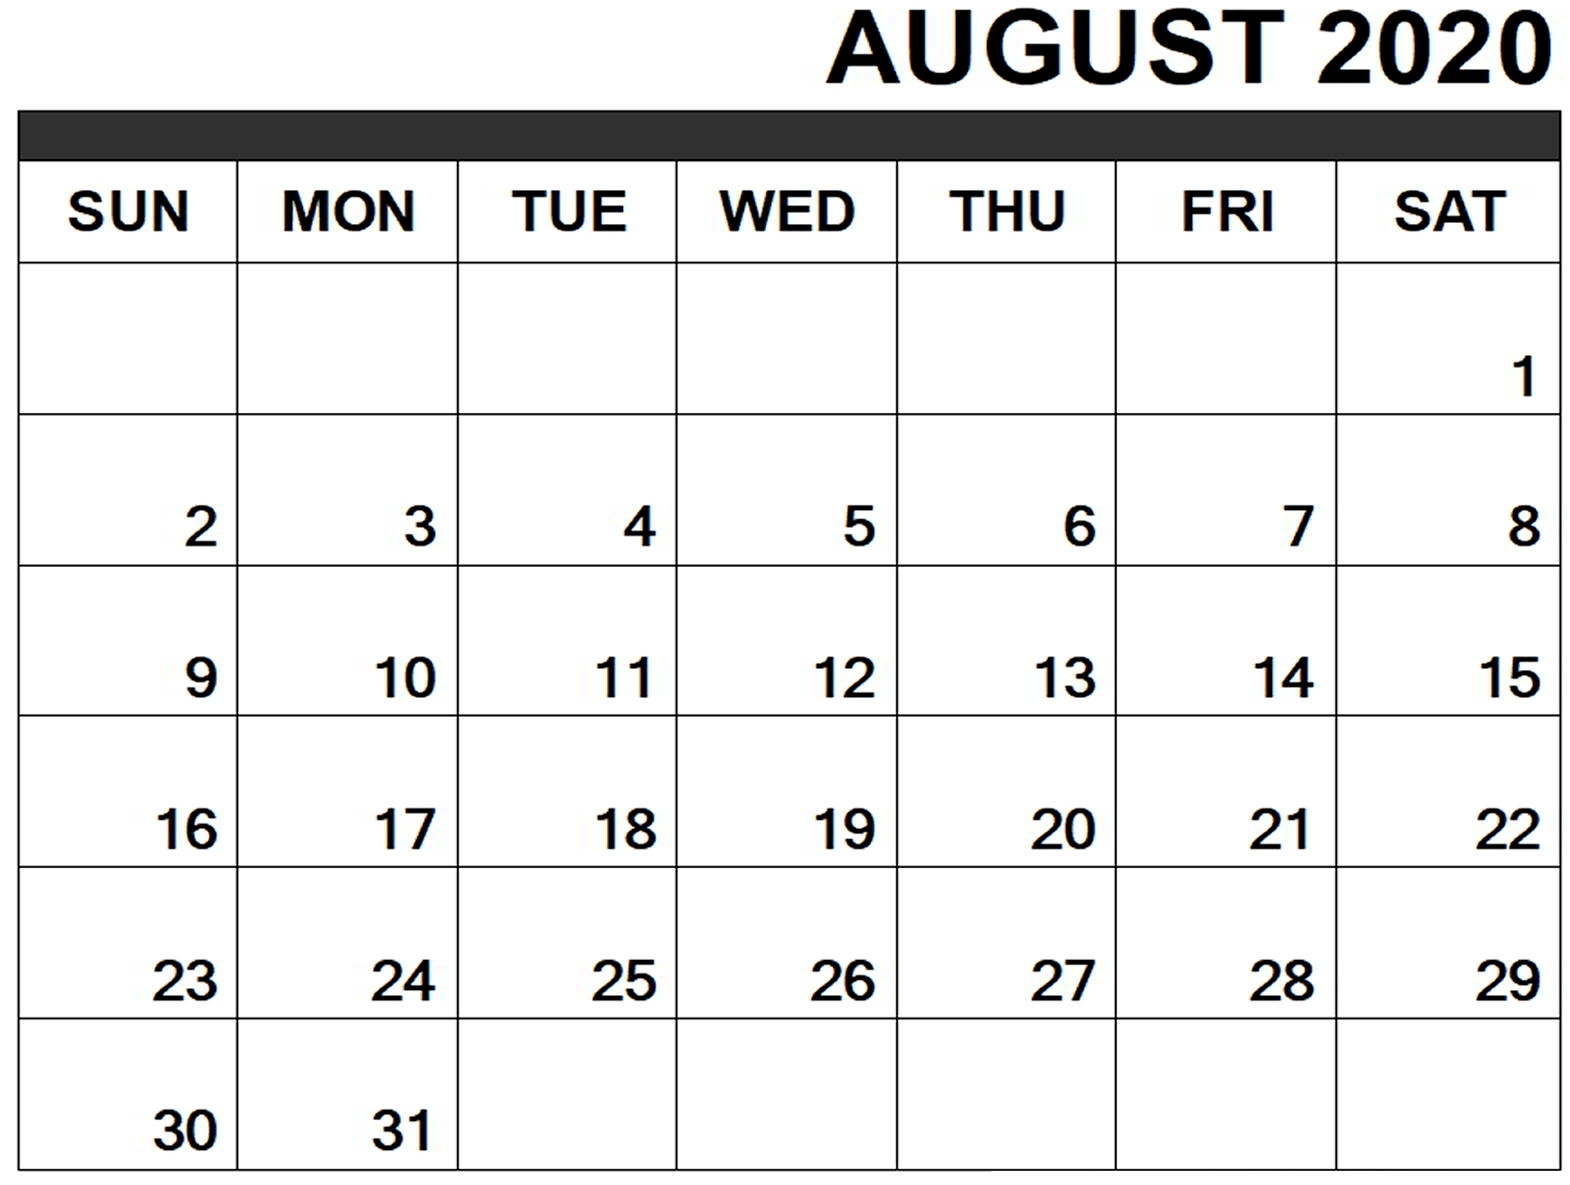 Collect August Calendar Print Out